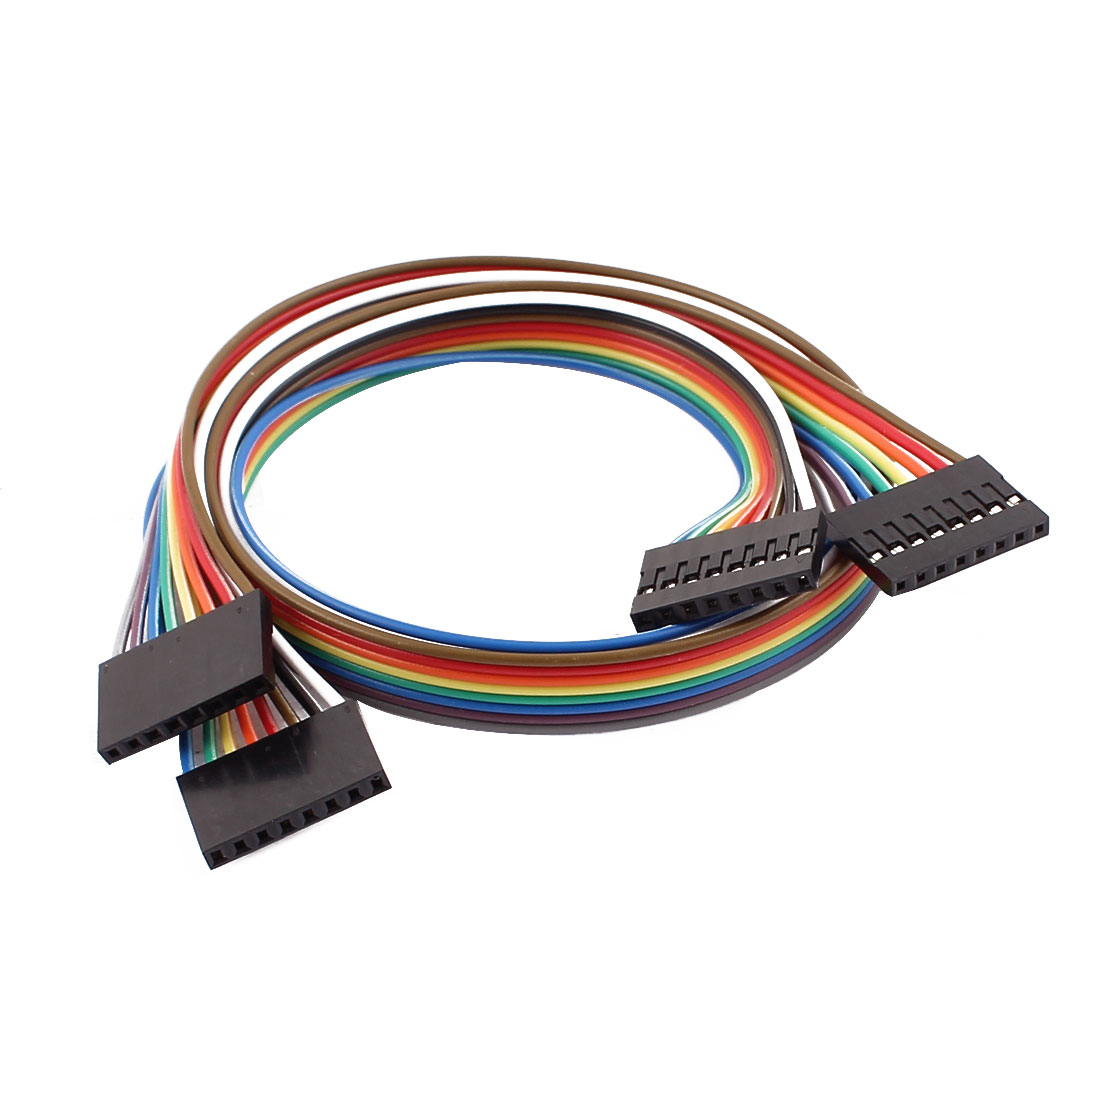 2 Pcs Female to Female 8P Jumper Wires Ribbon Cables Pi Pic Breadboard DIY 40cm Long